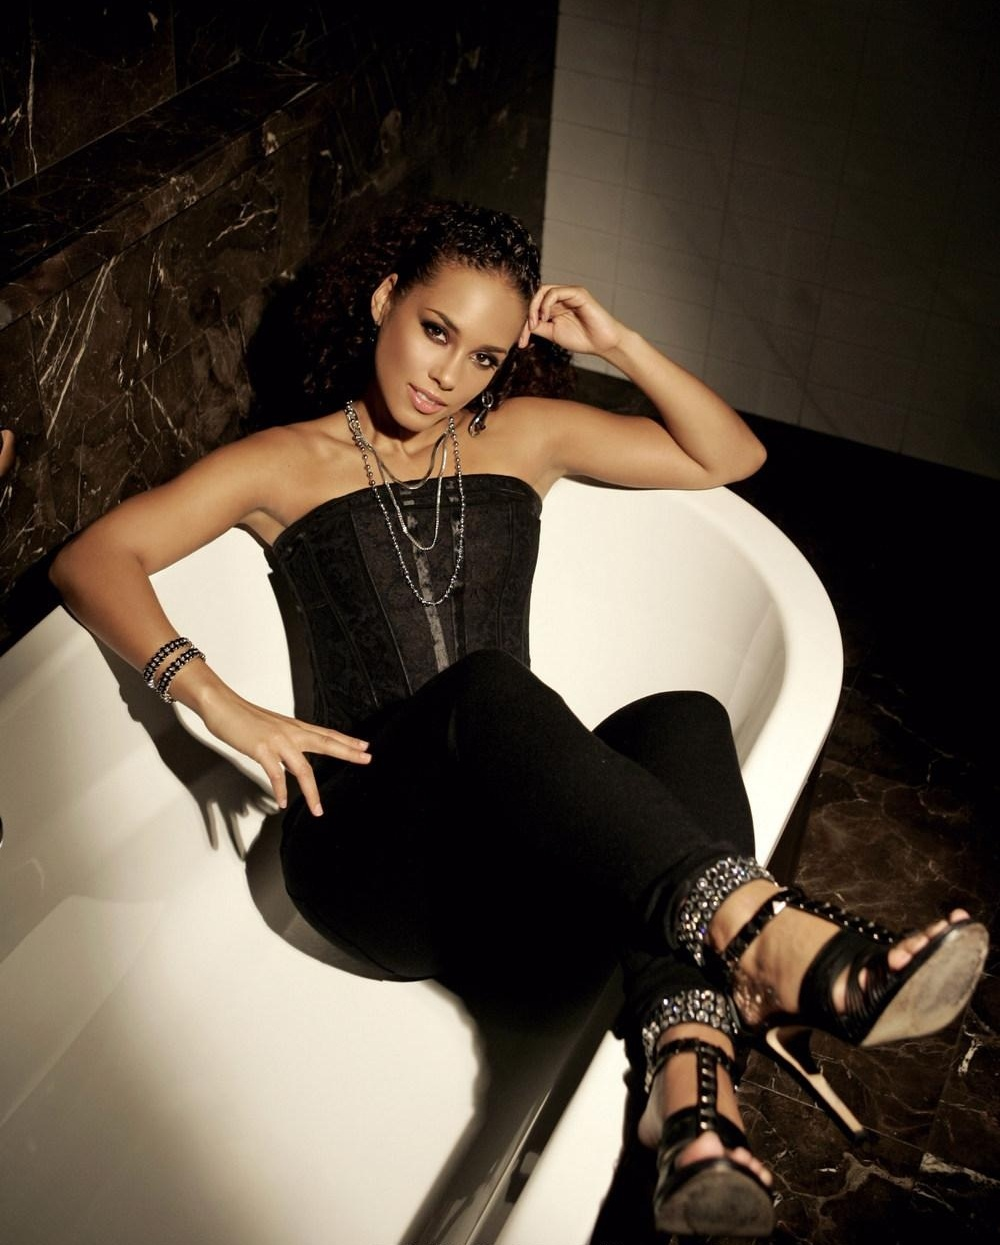 31 Alicia Keys Hot And S*Xy Pictures – One Of The Hottest Ideas And Designs